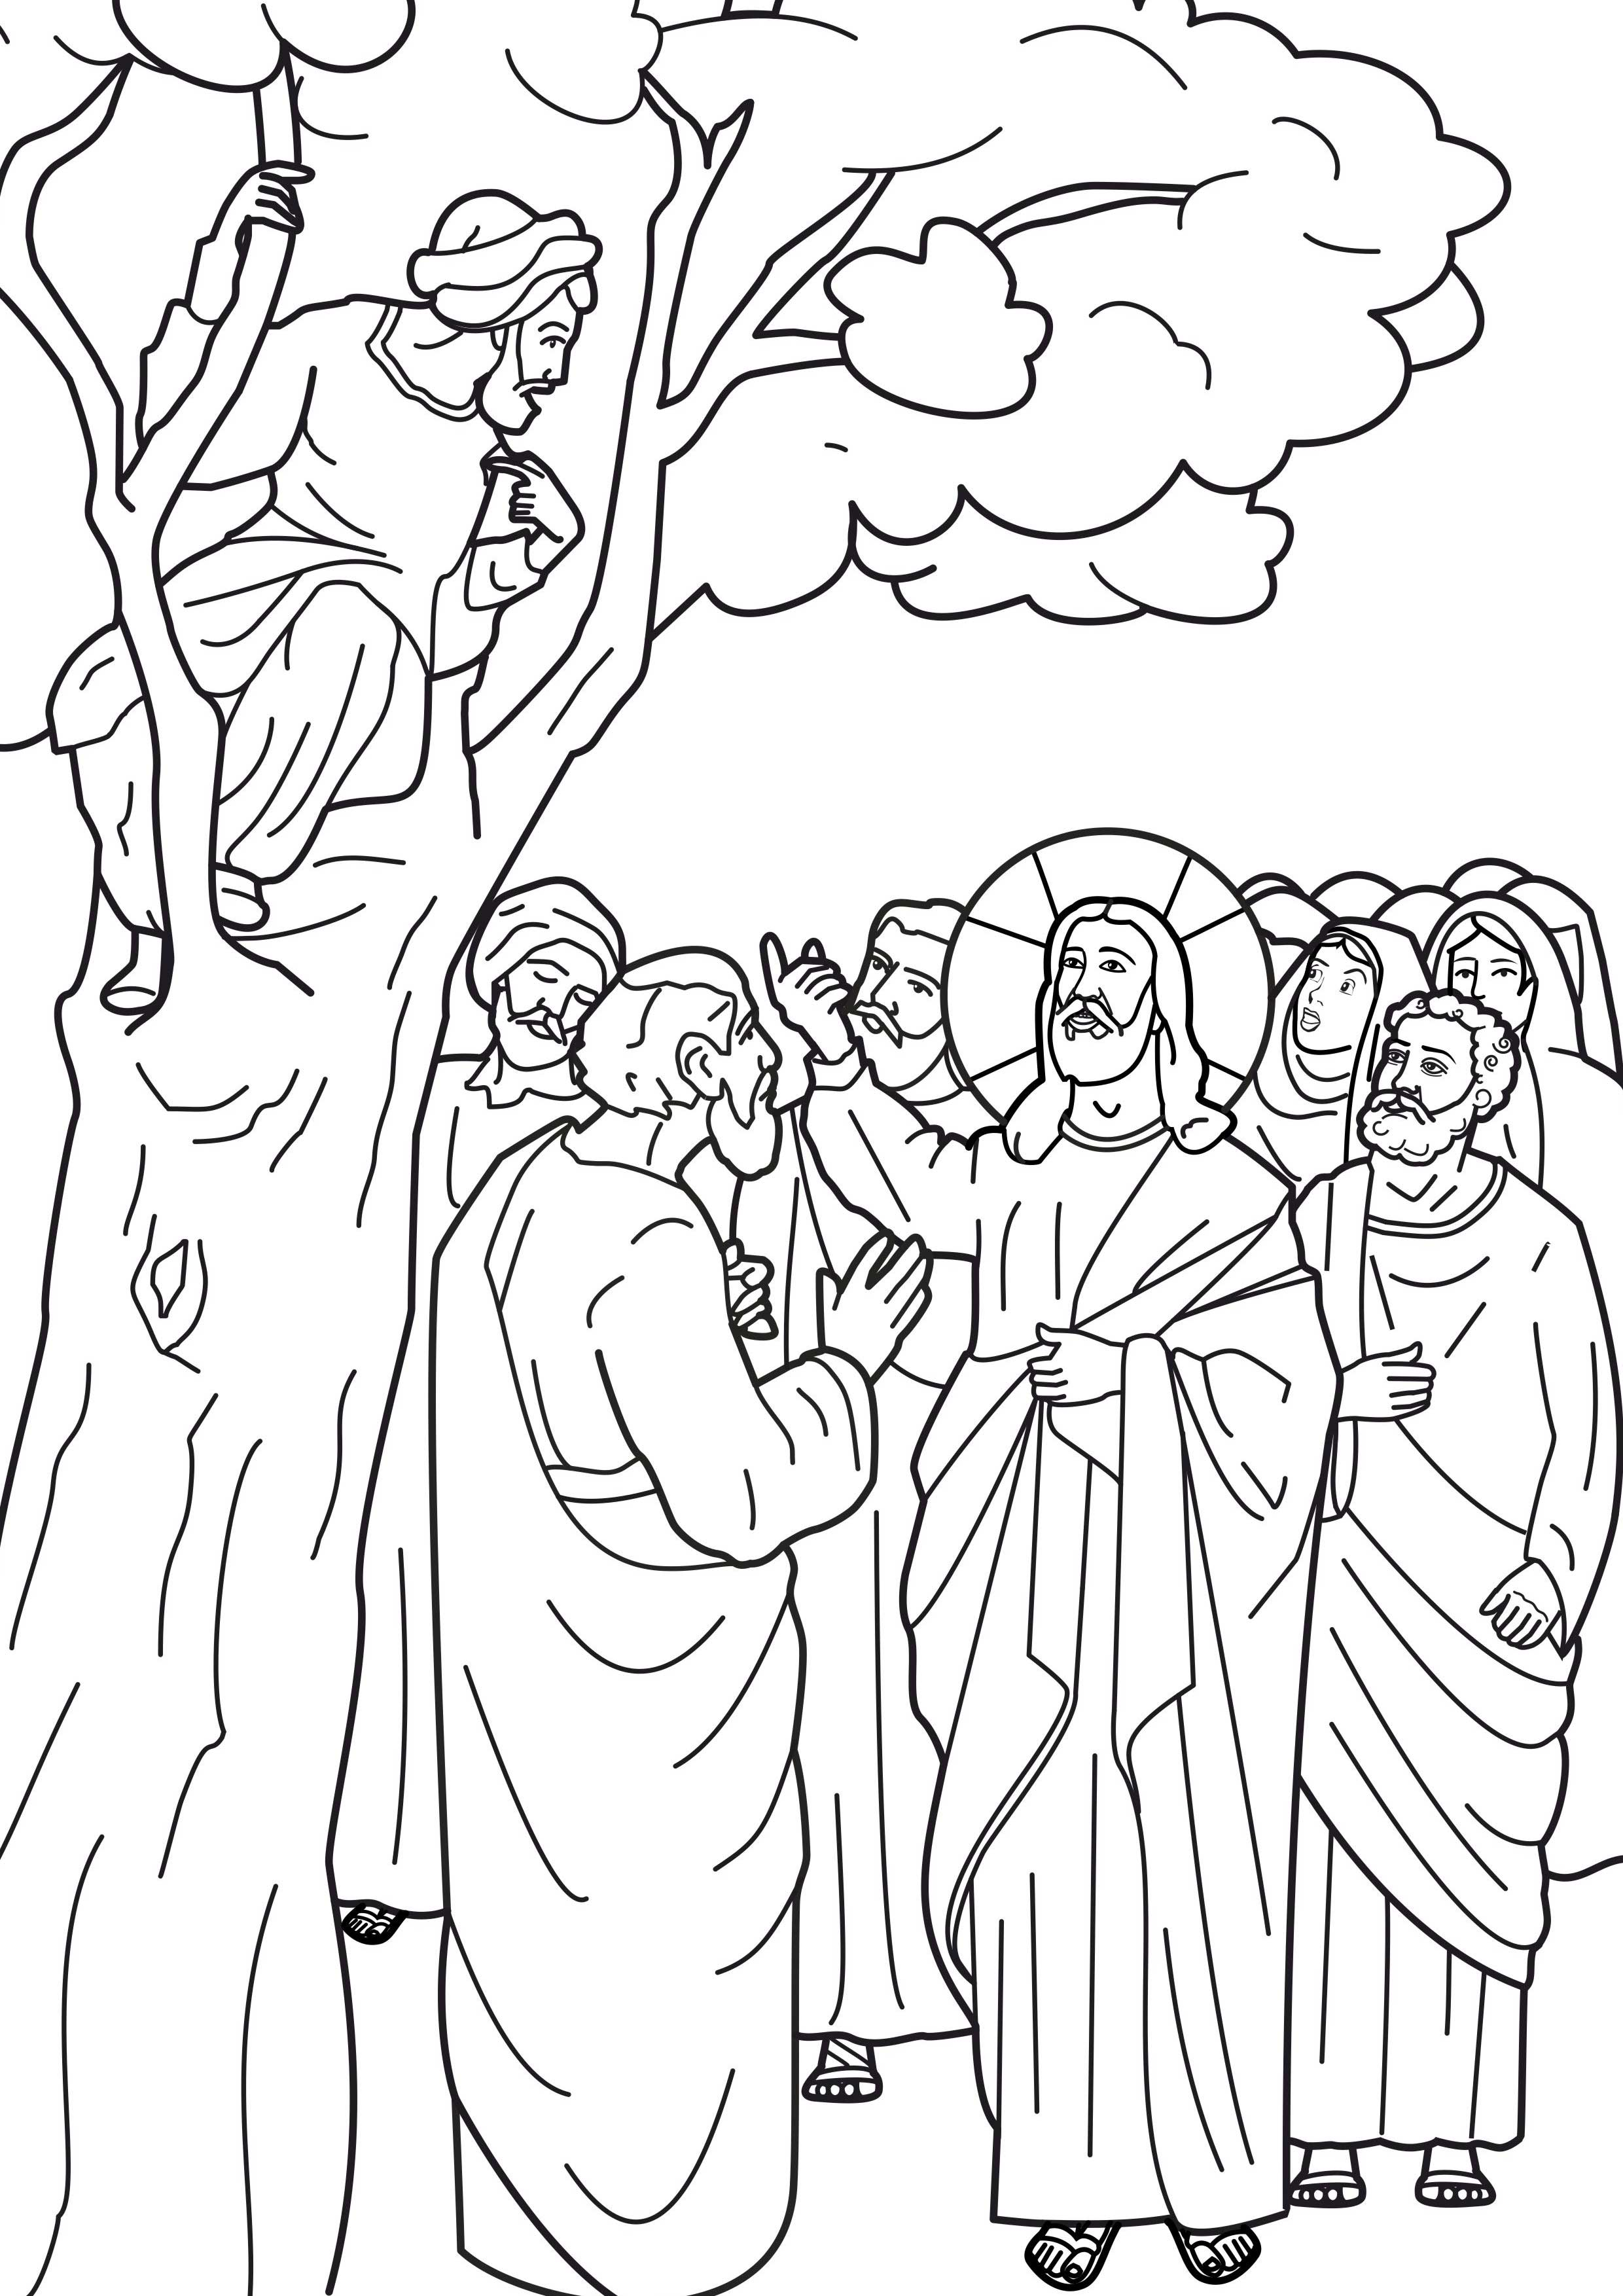 Jesus And Zacchaeus Coloring Pages Zacchaeus In A Tree Coloring